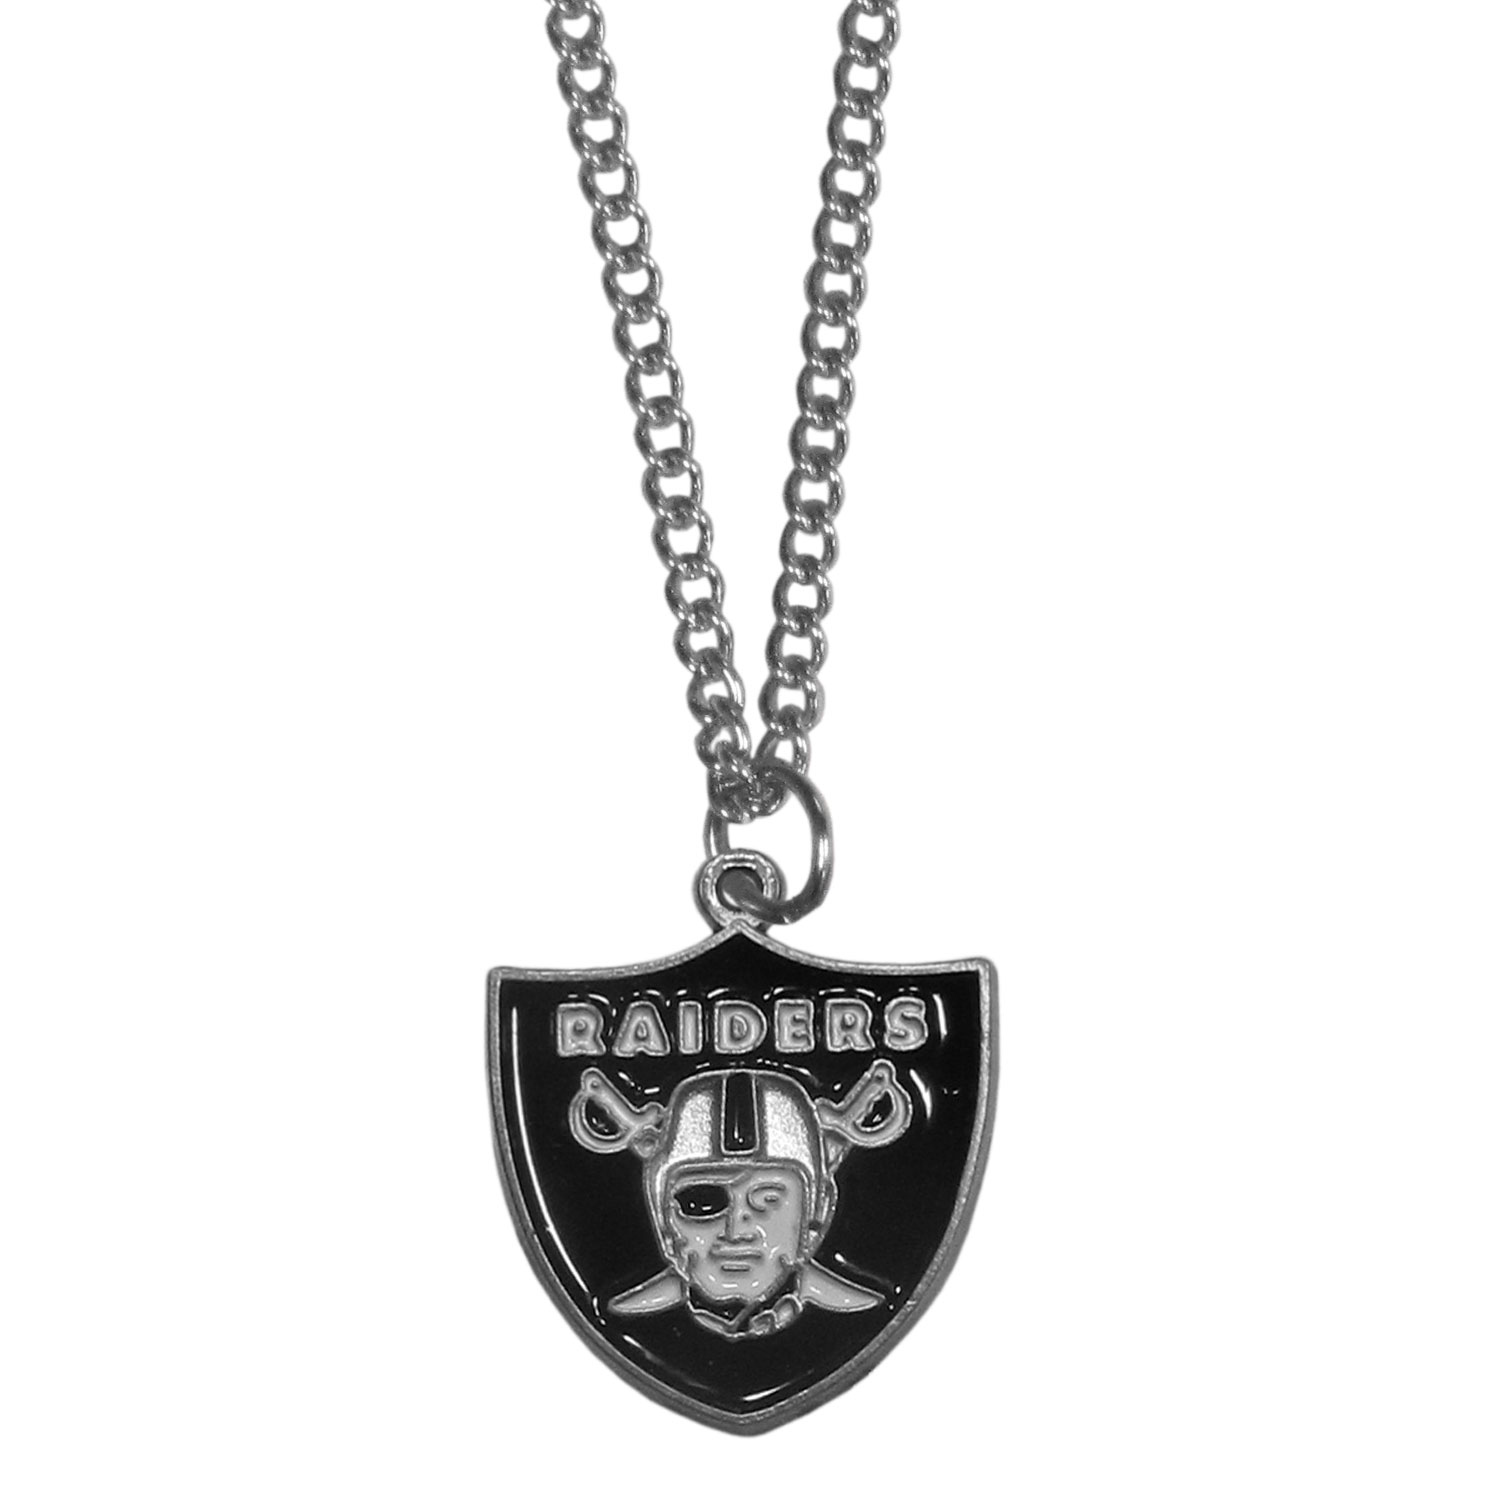 Oakland Raiders Chain Necklace - Make a statement with our chain necklaces. The 22 inch chain features a fully cast, metal Oakland Raiders pendant with vivid enameled details. Perfect accessory for game day and nice enough to wear everyday!